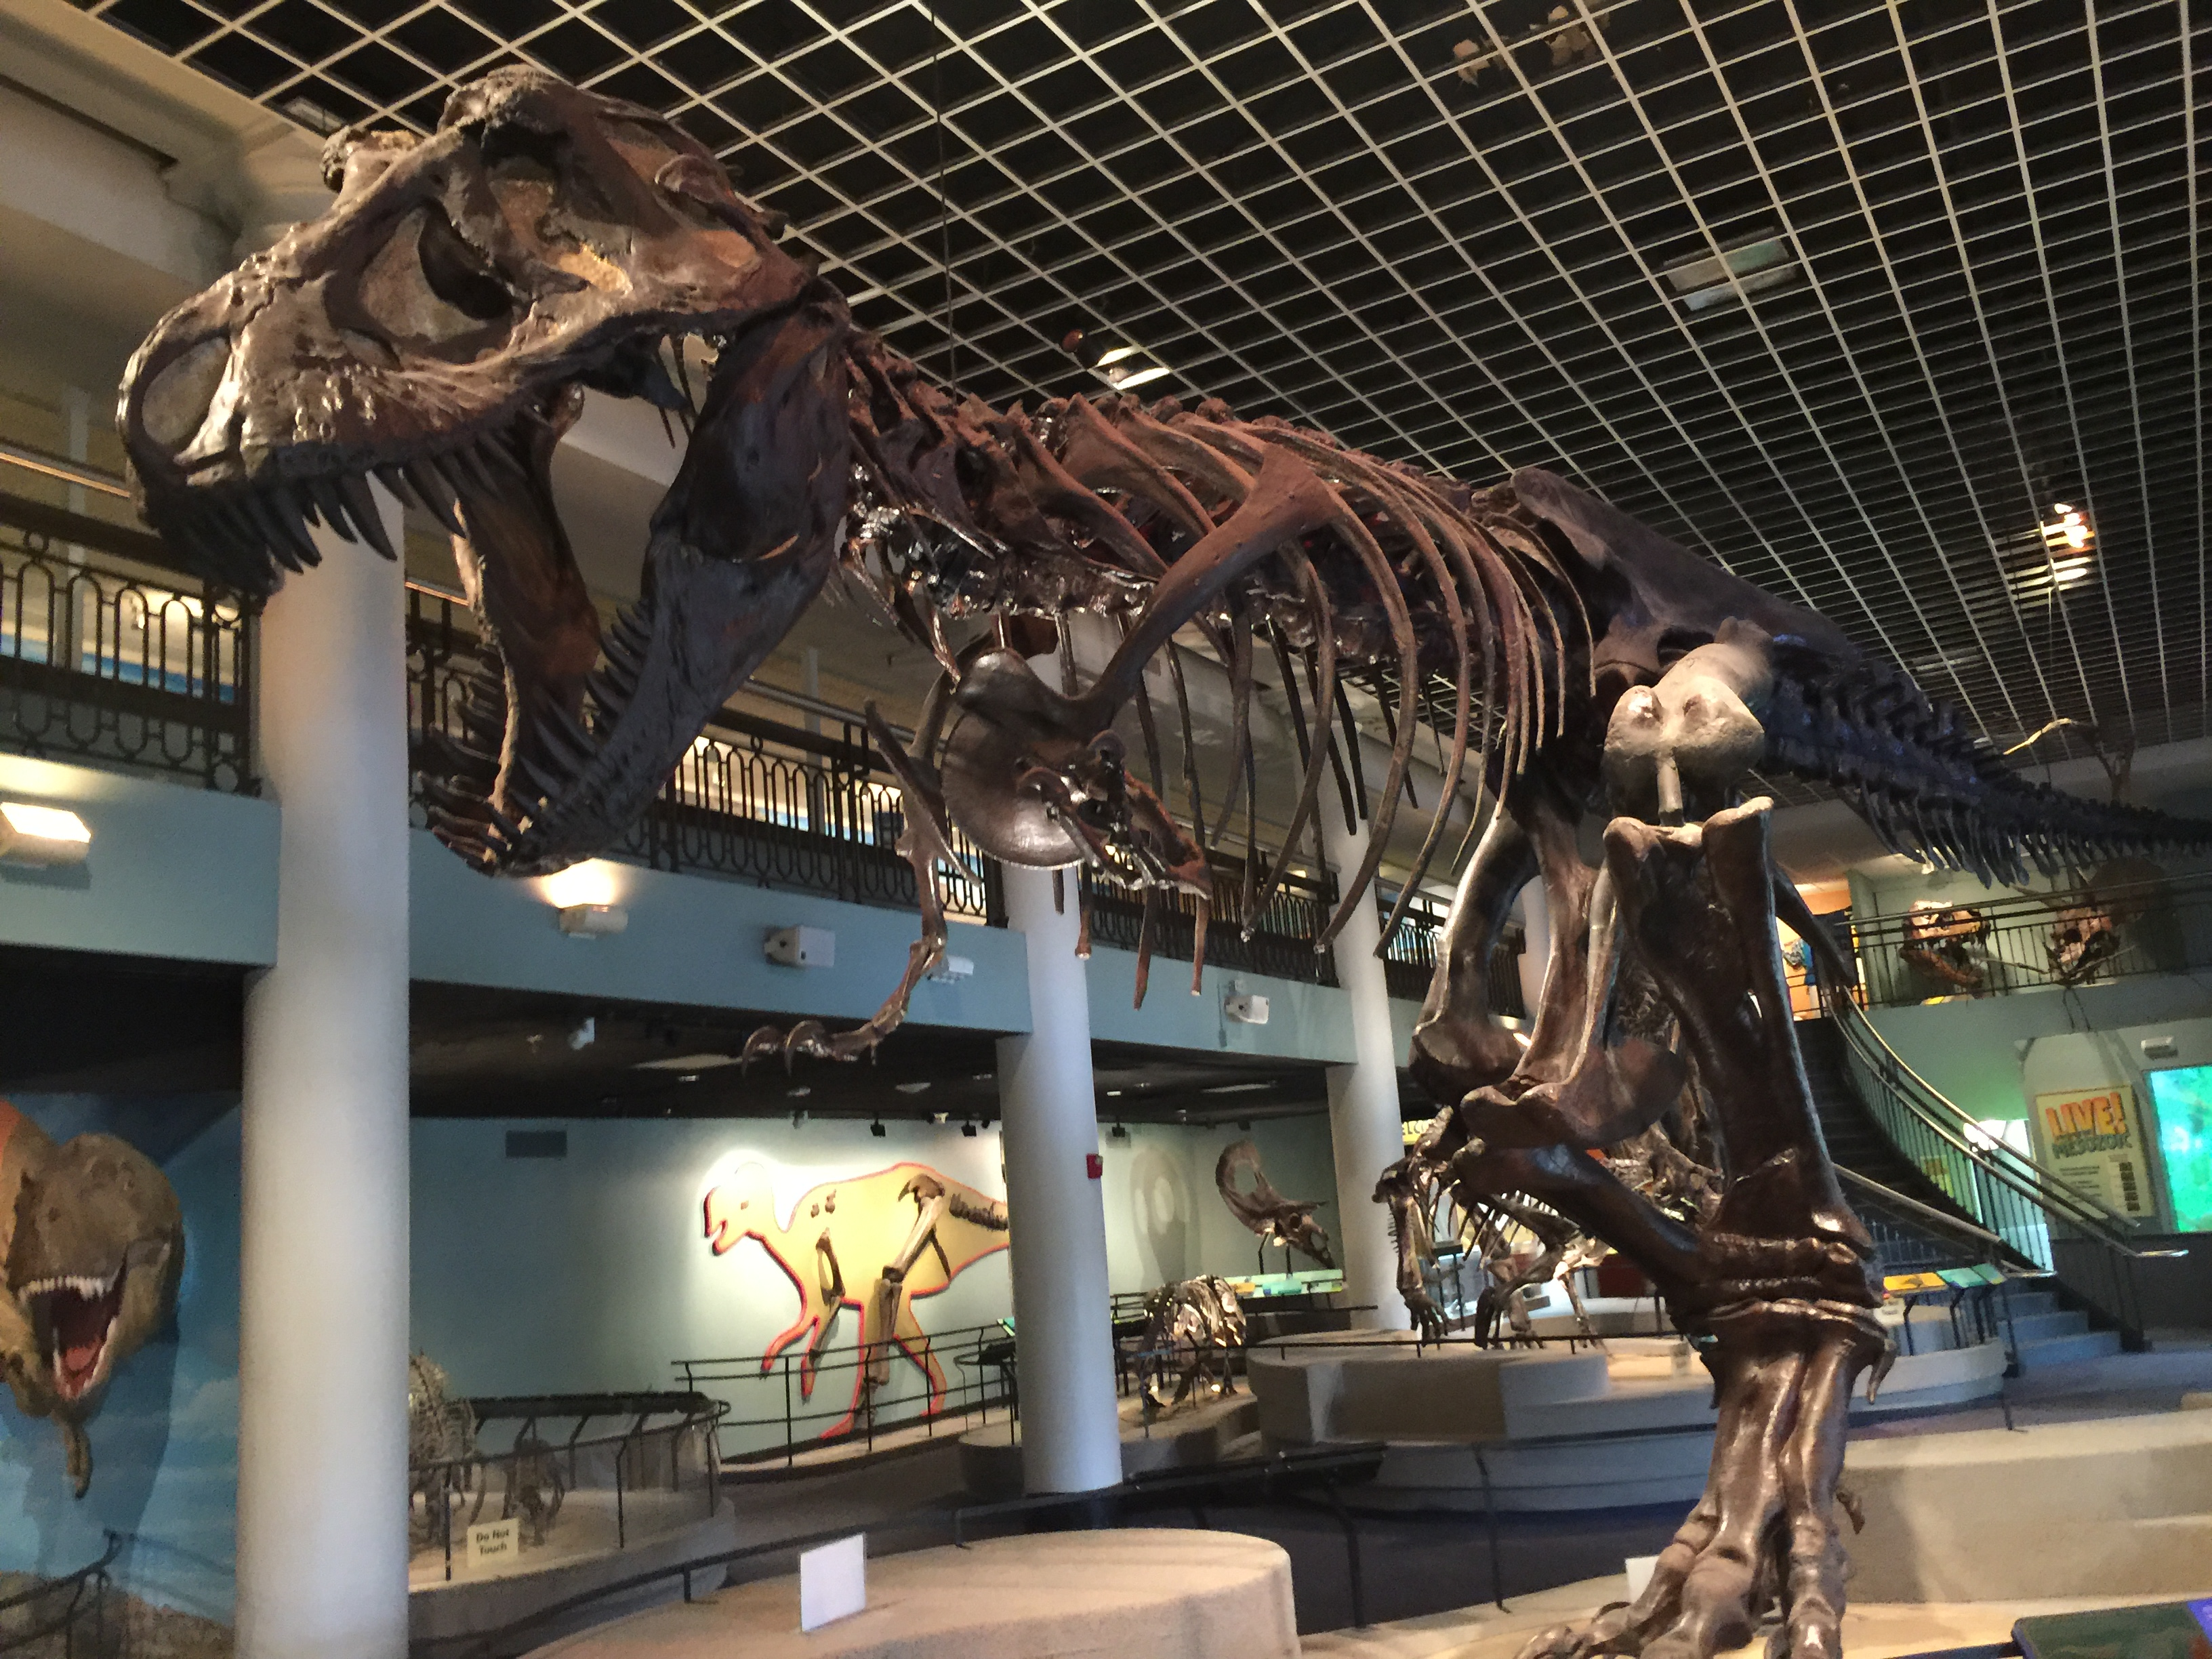 This full-size T. Rex is over 42 feet long and weighs in at 7.5 tons...when alive that is.